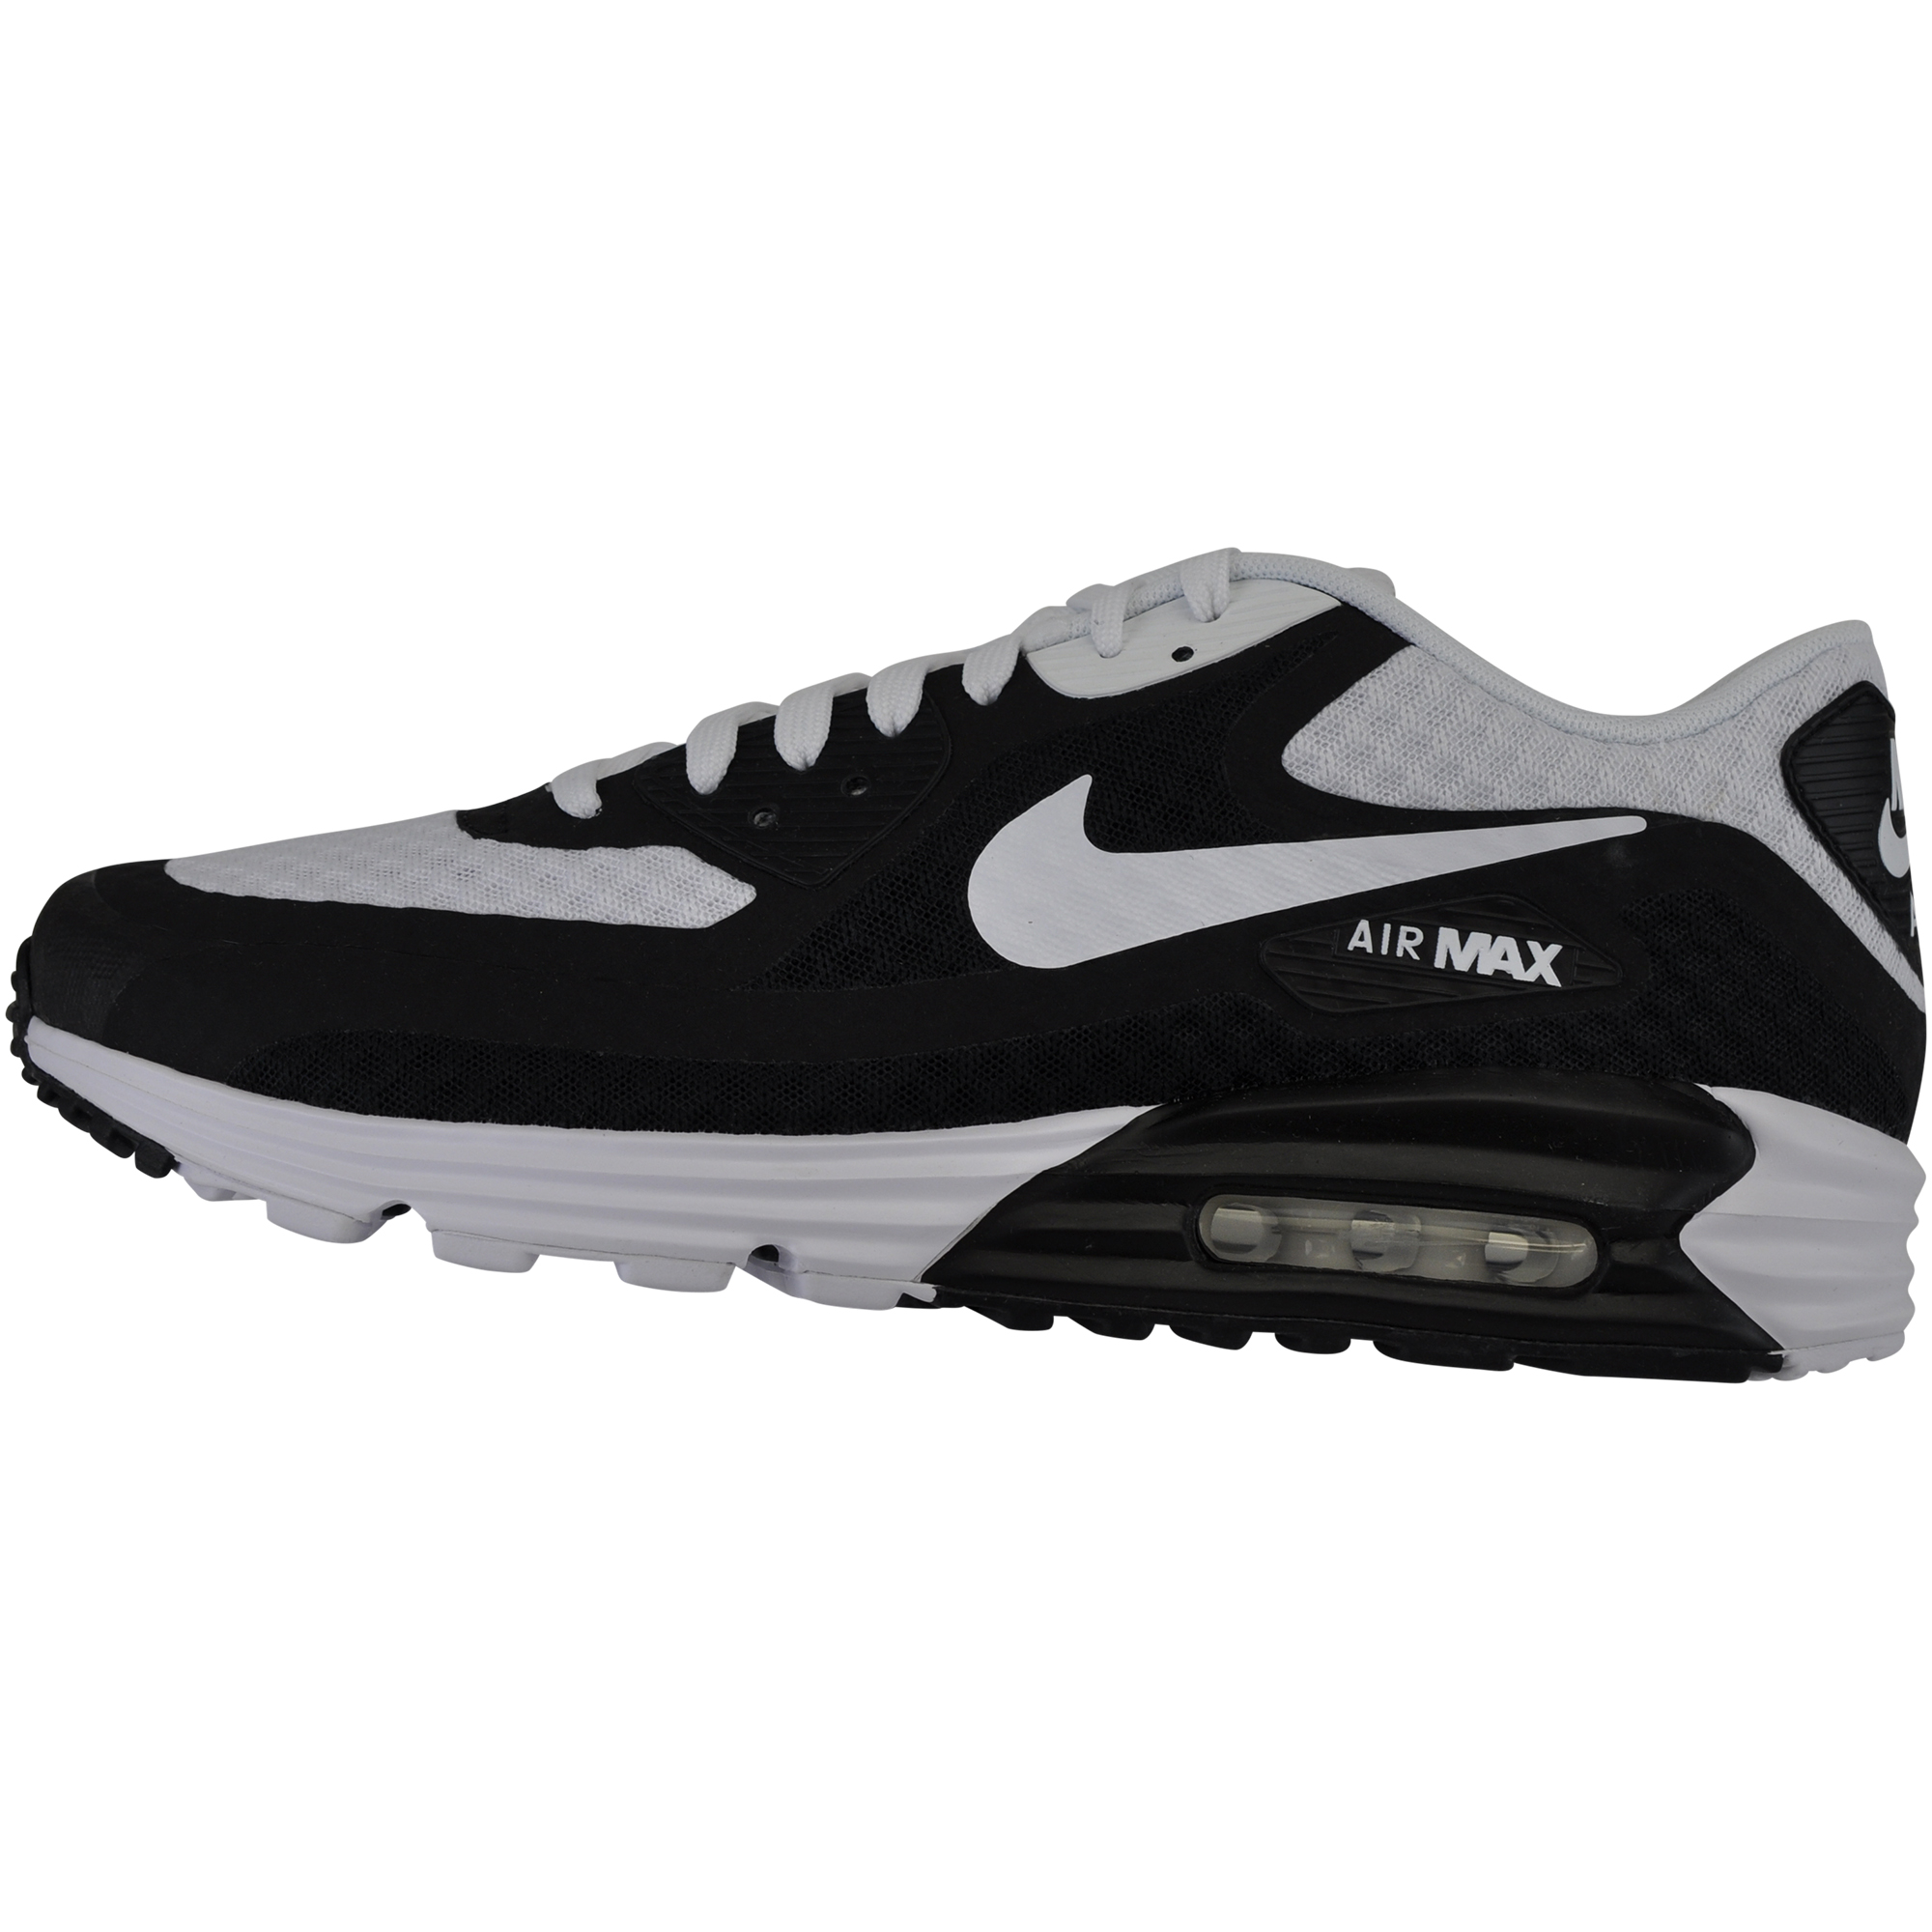 watch ef852 15a44 de Nike Air Max 90 Tavas 1 Thea essential wmns lunar 90 Shox 90 ultra